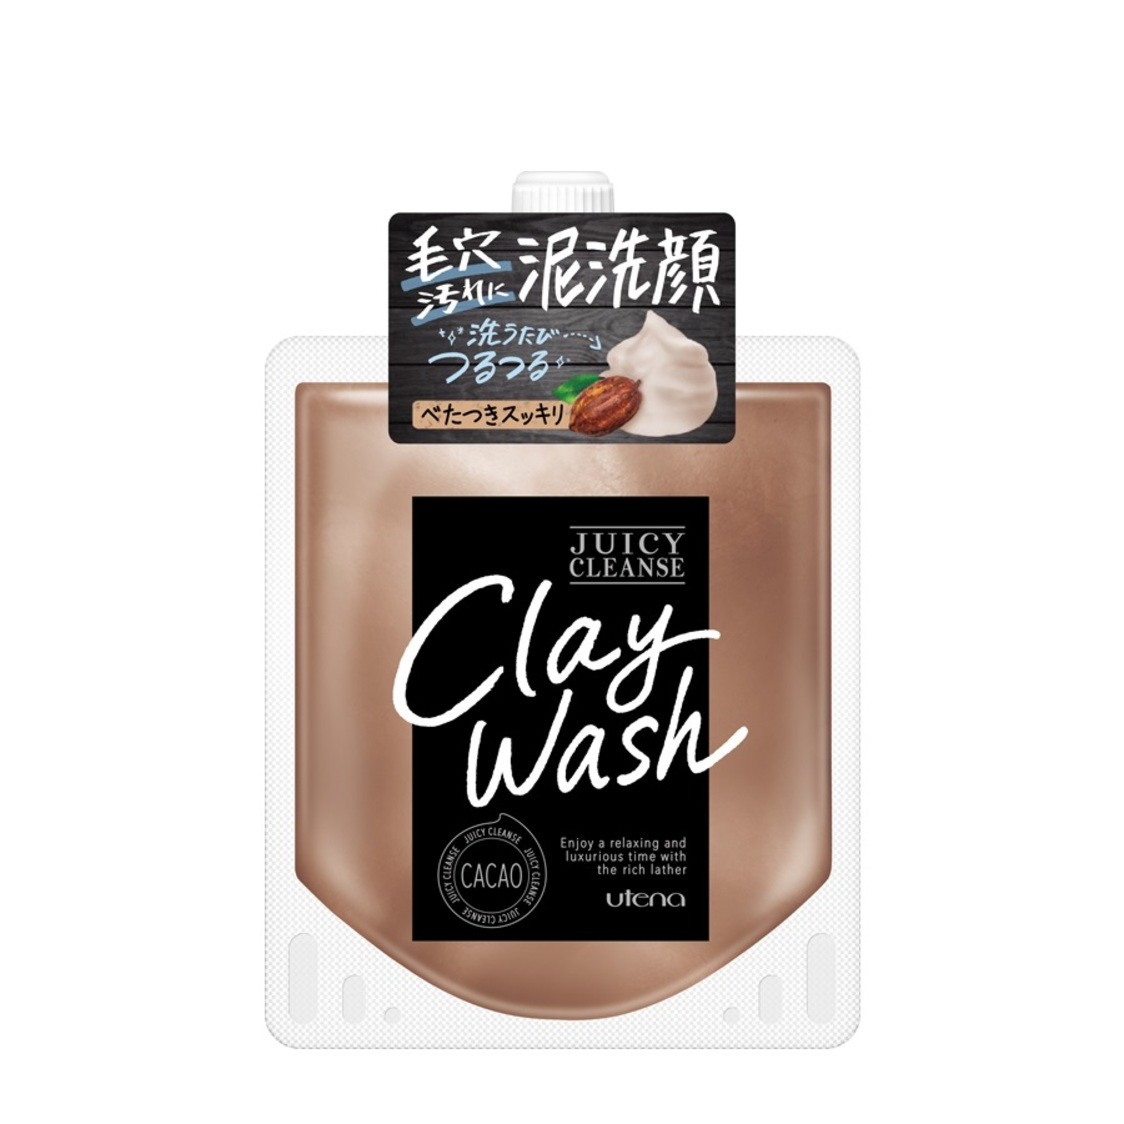 Juicy Cleanse Facial Wash Cocoa 110g